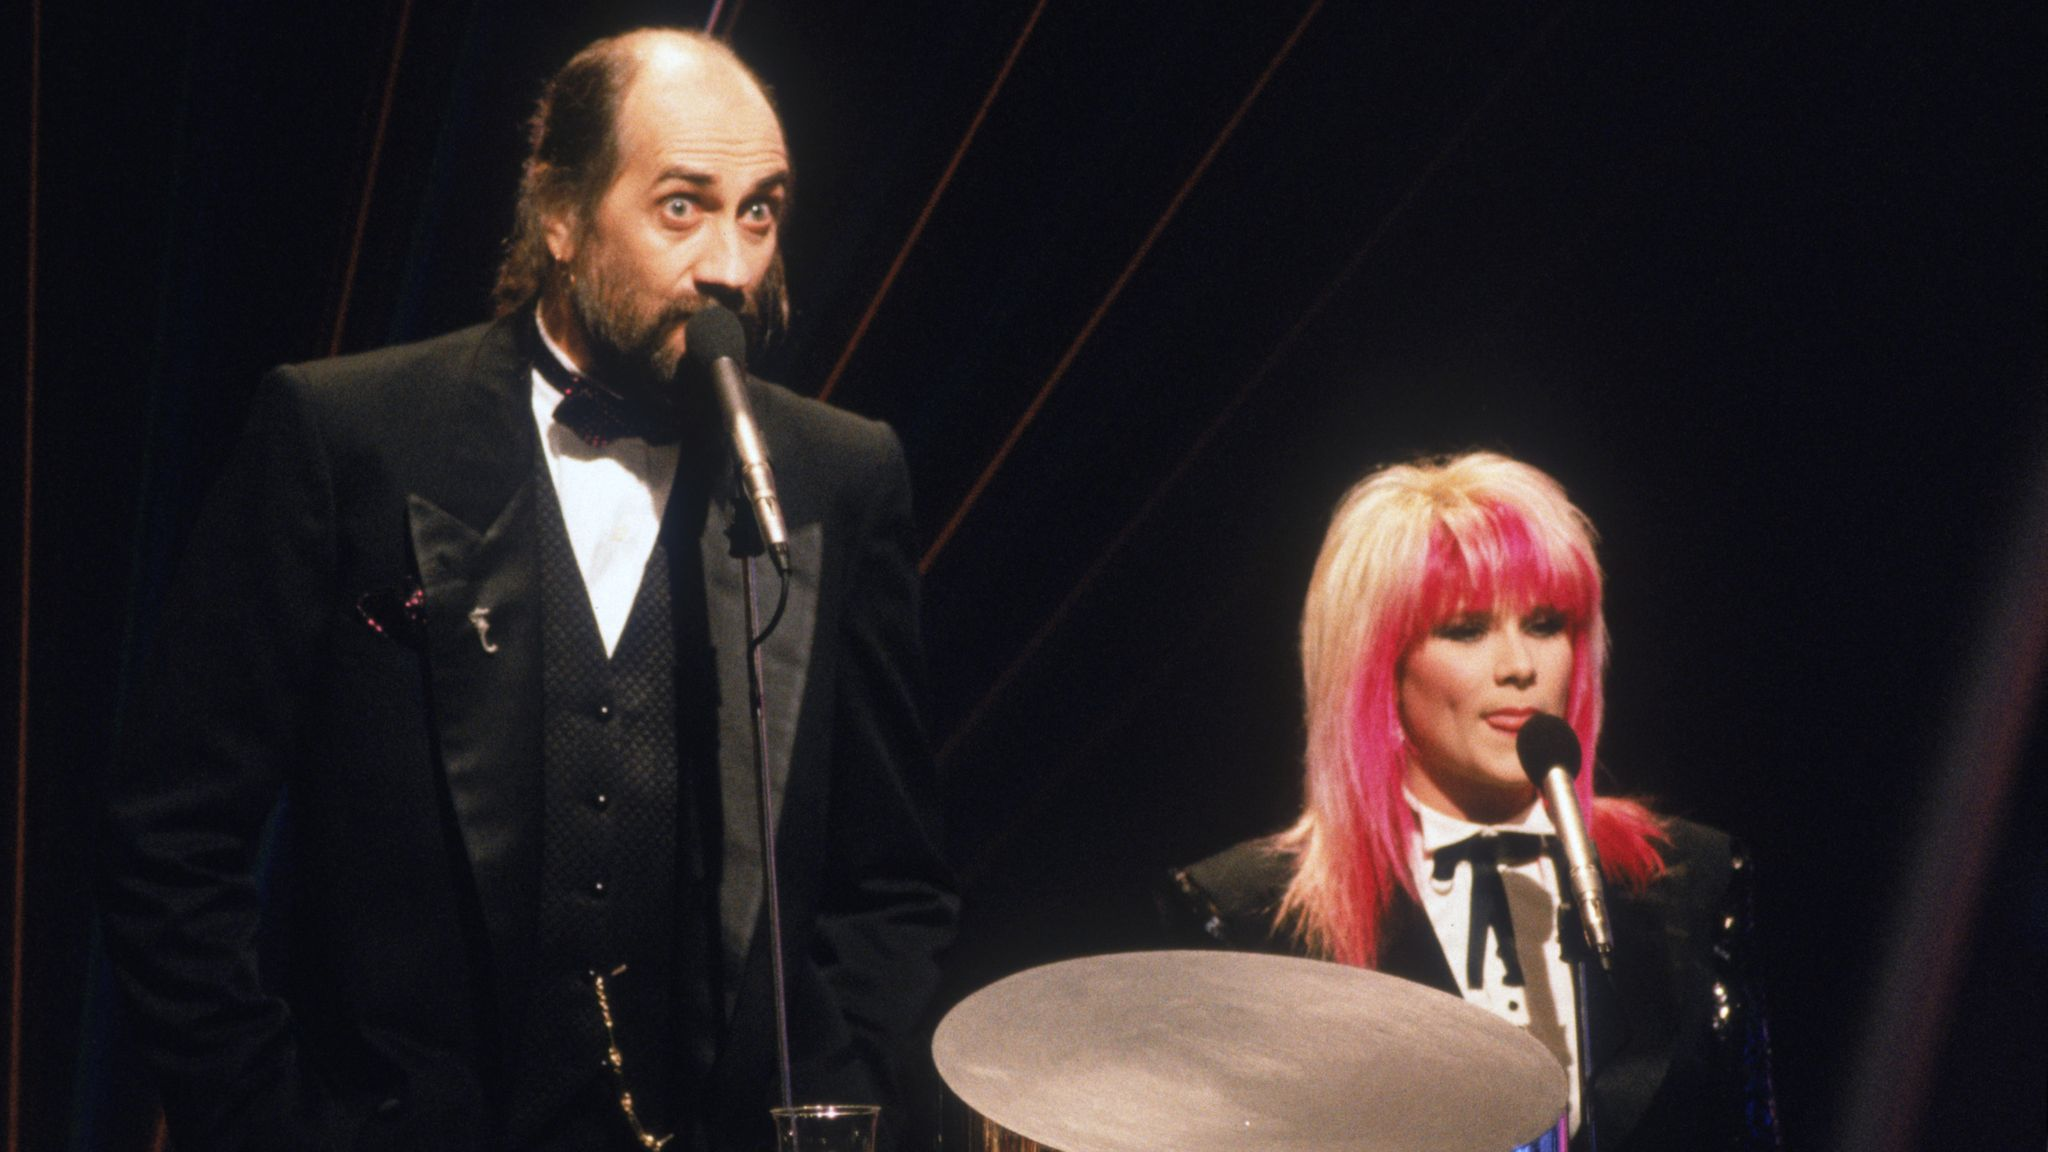 Hosts Mick Fleetwood and Samantha Fox in 1989